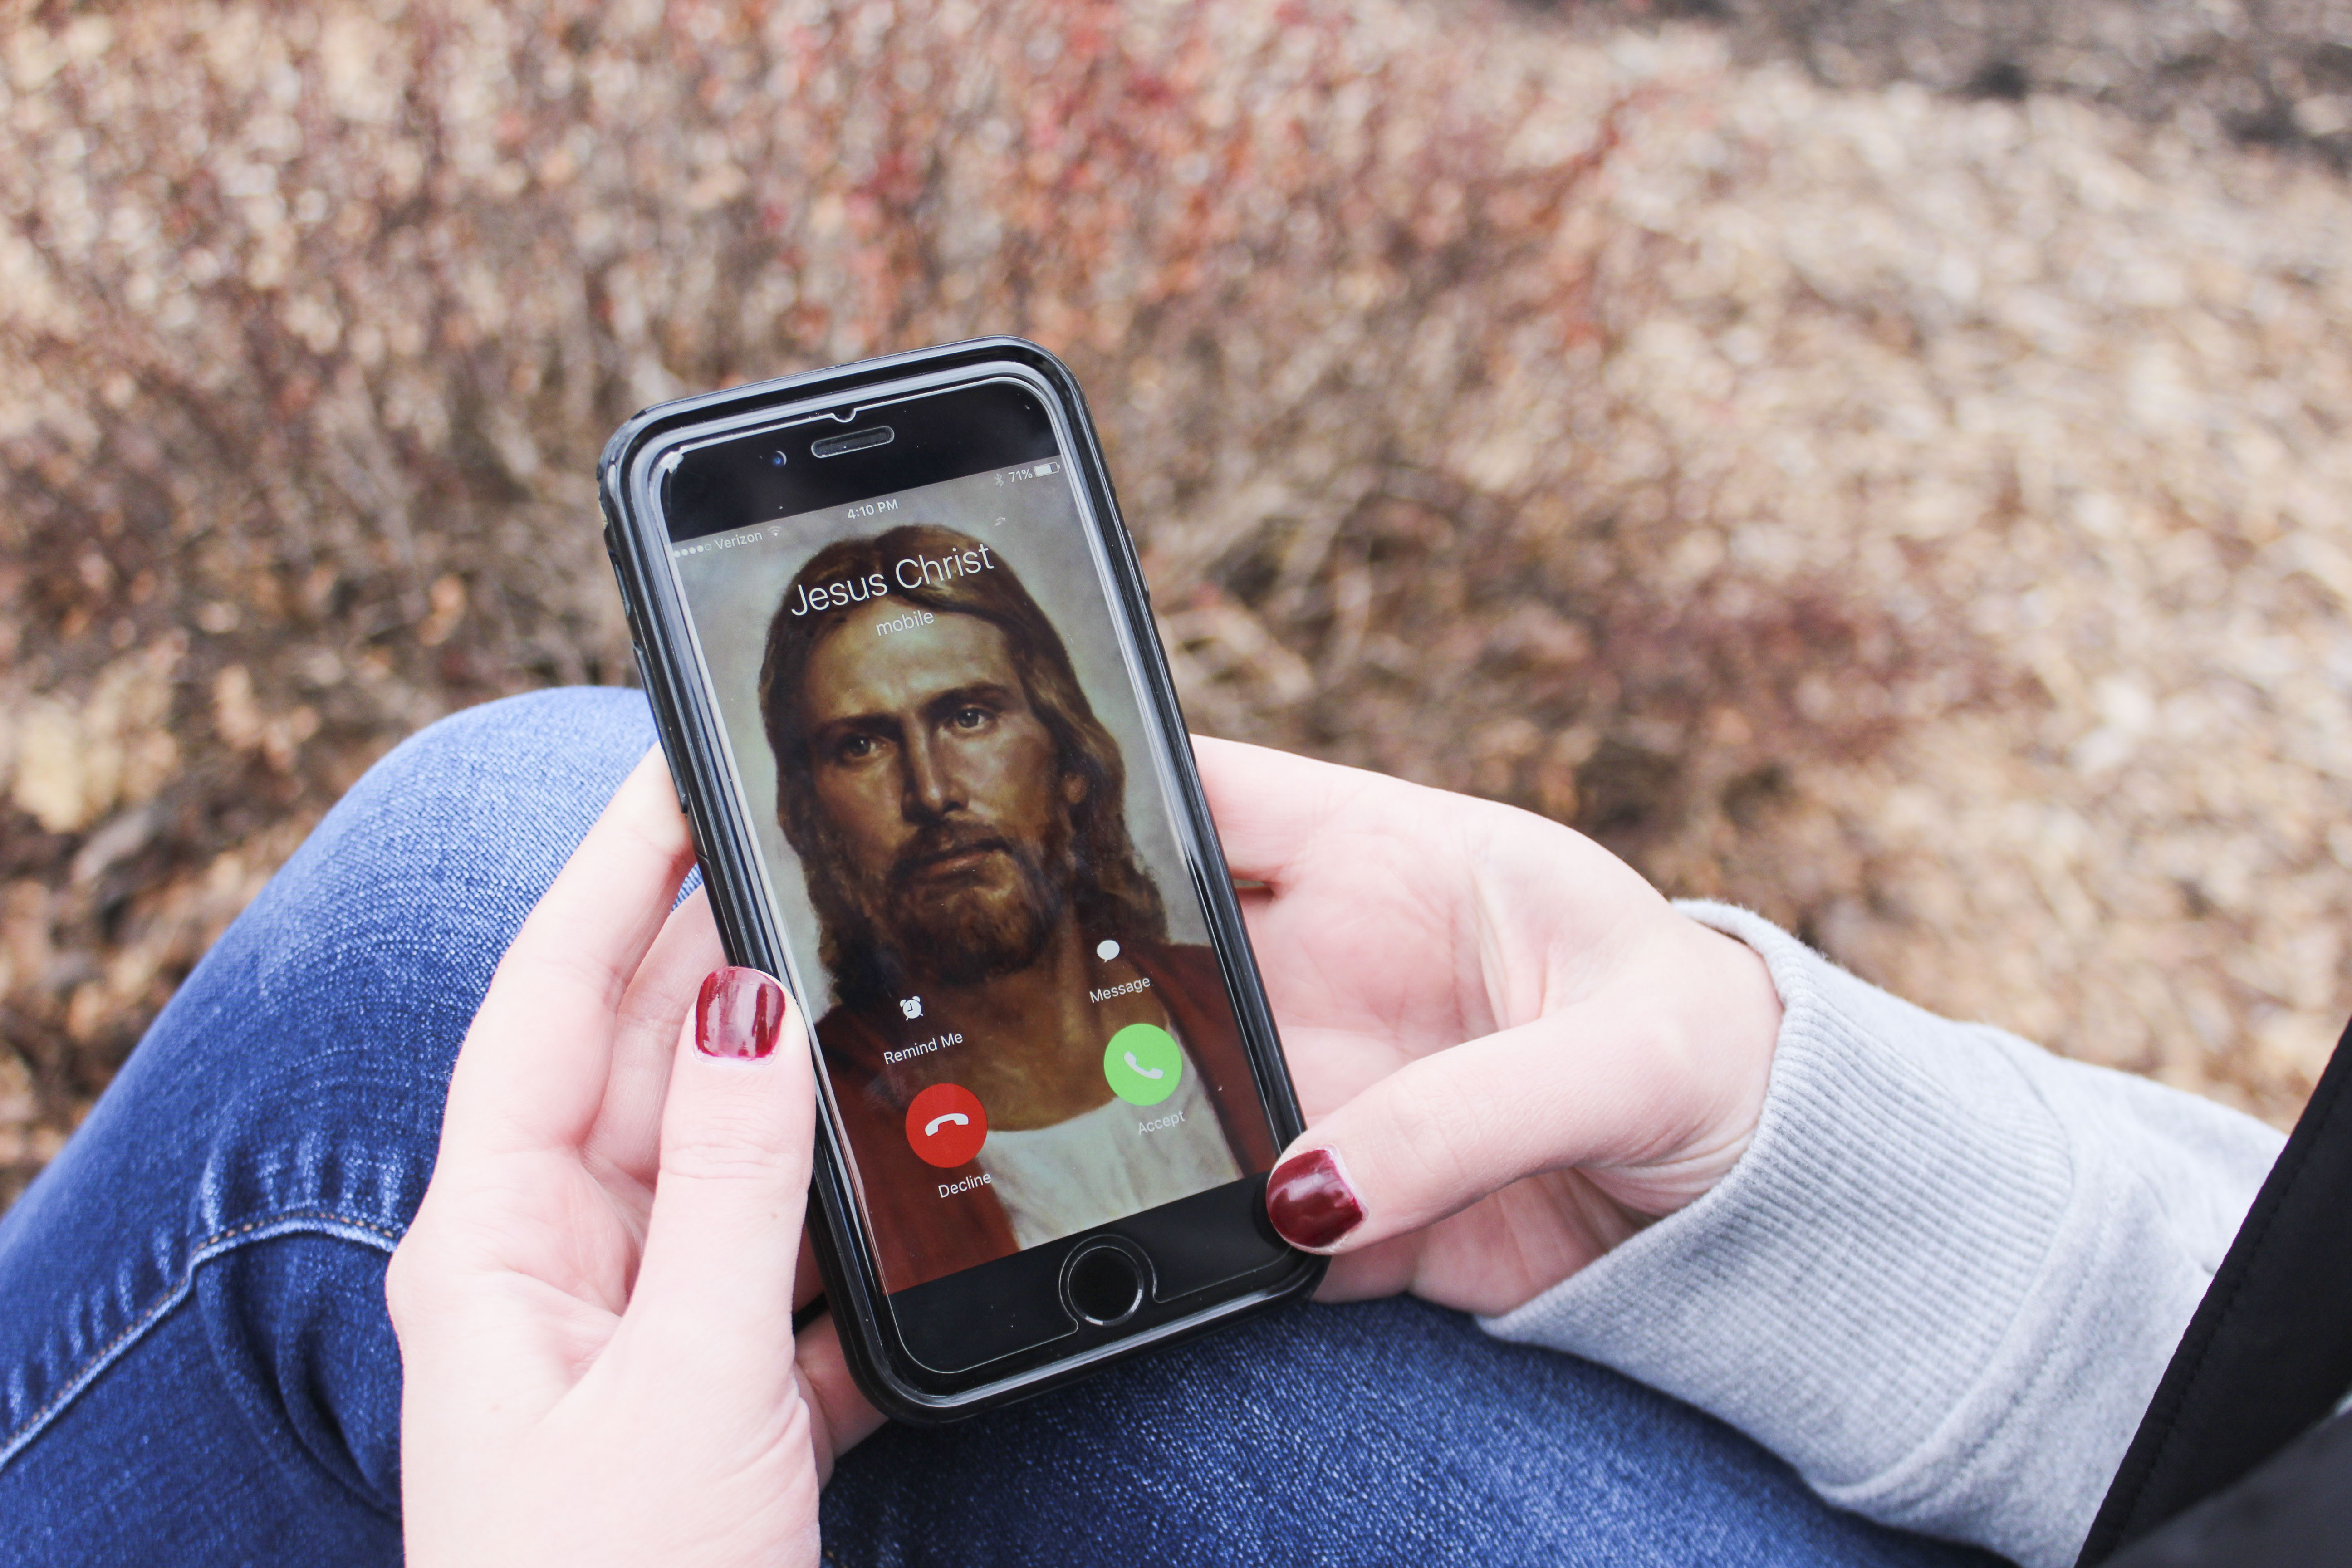 Finding Jesus Christ in your daily life